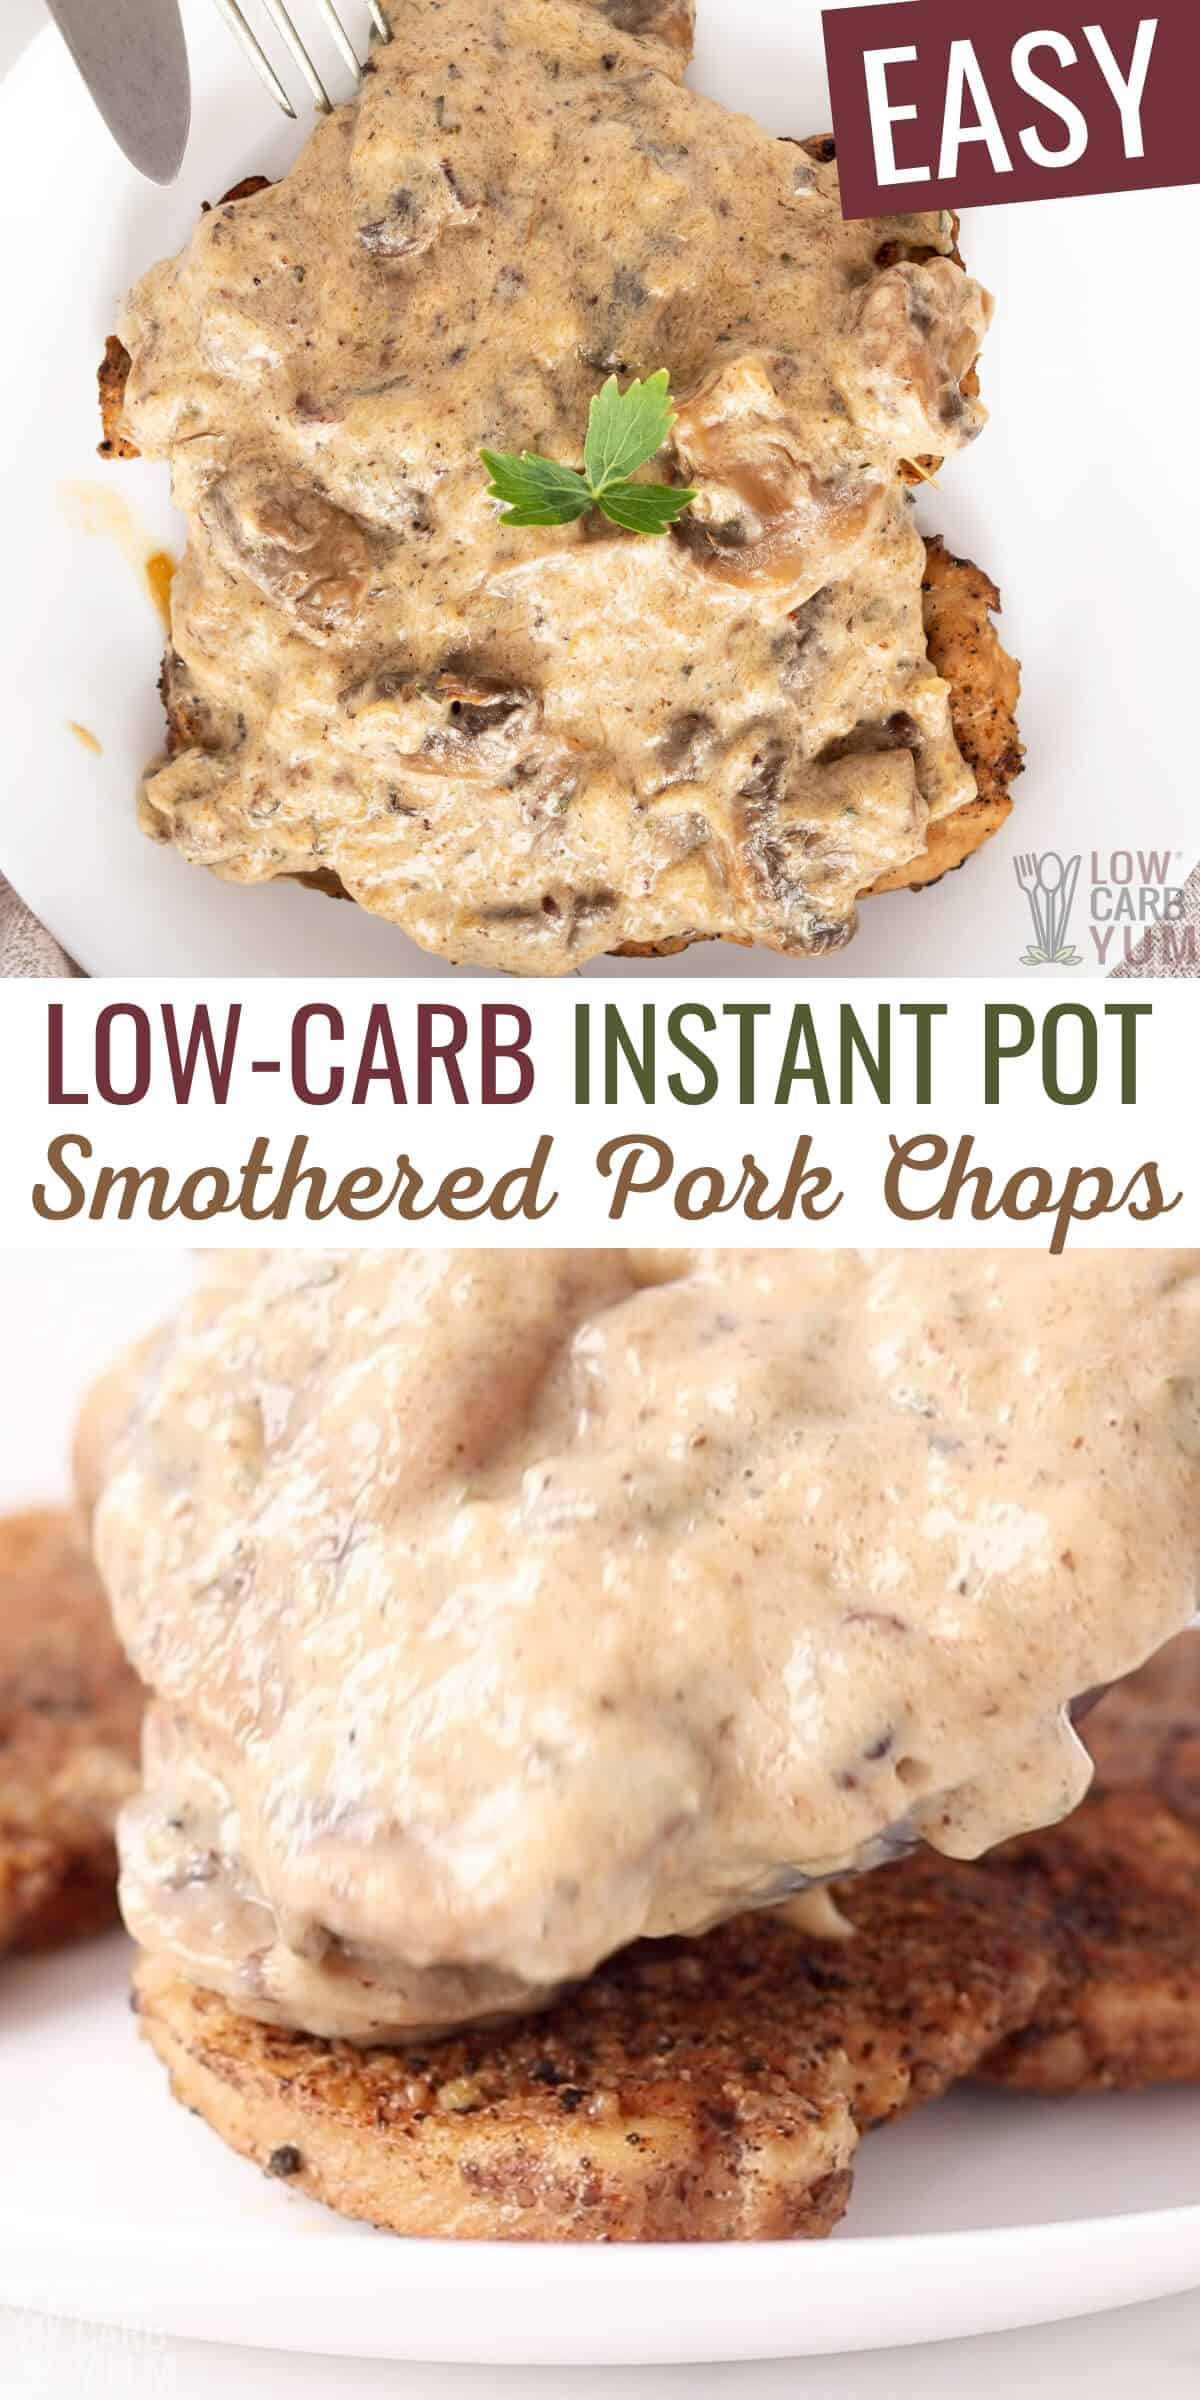 Low-Carb Instant Pot Smothered Pork Chops